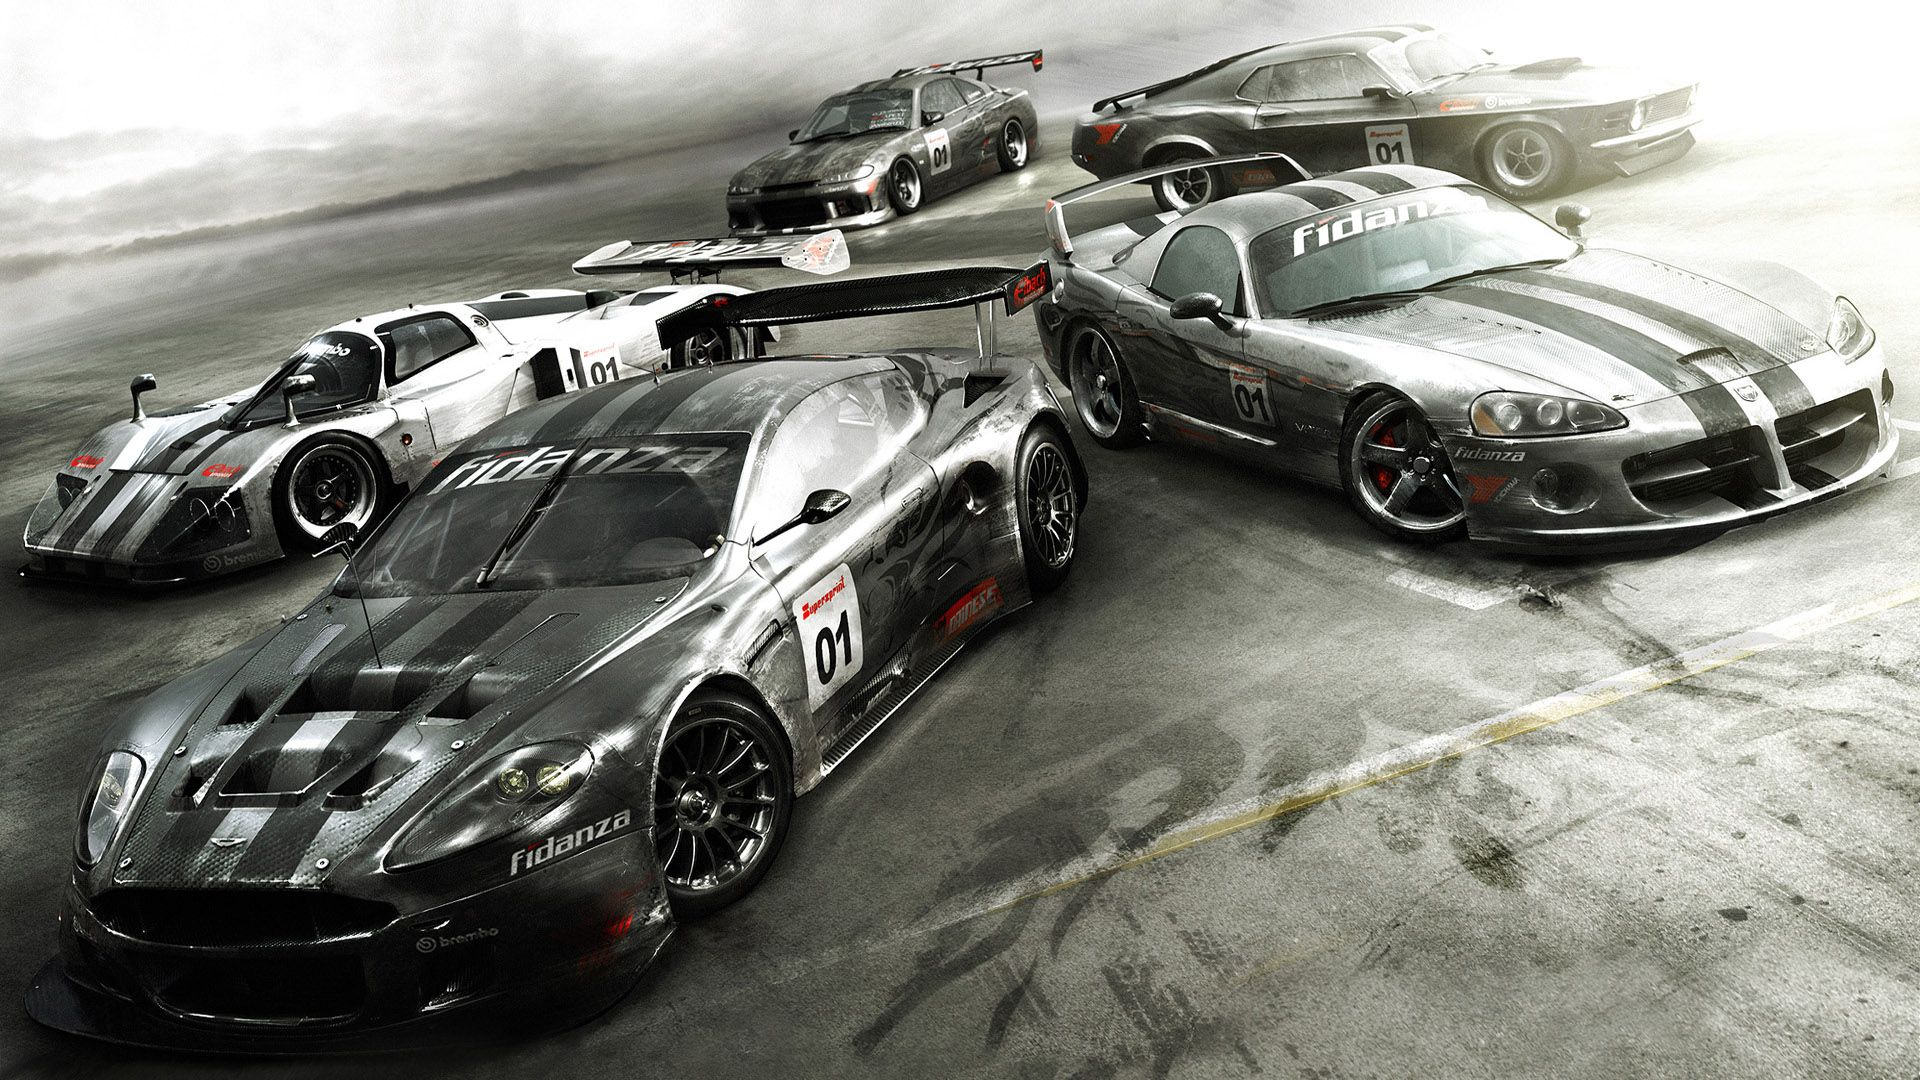 Cars wallpapers hd free download you pc screen and iphone